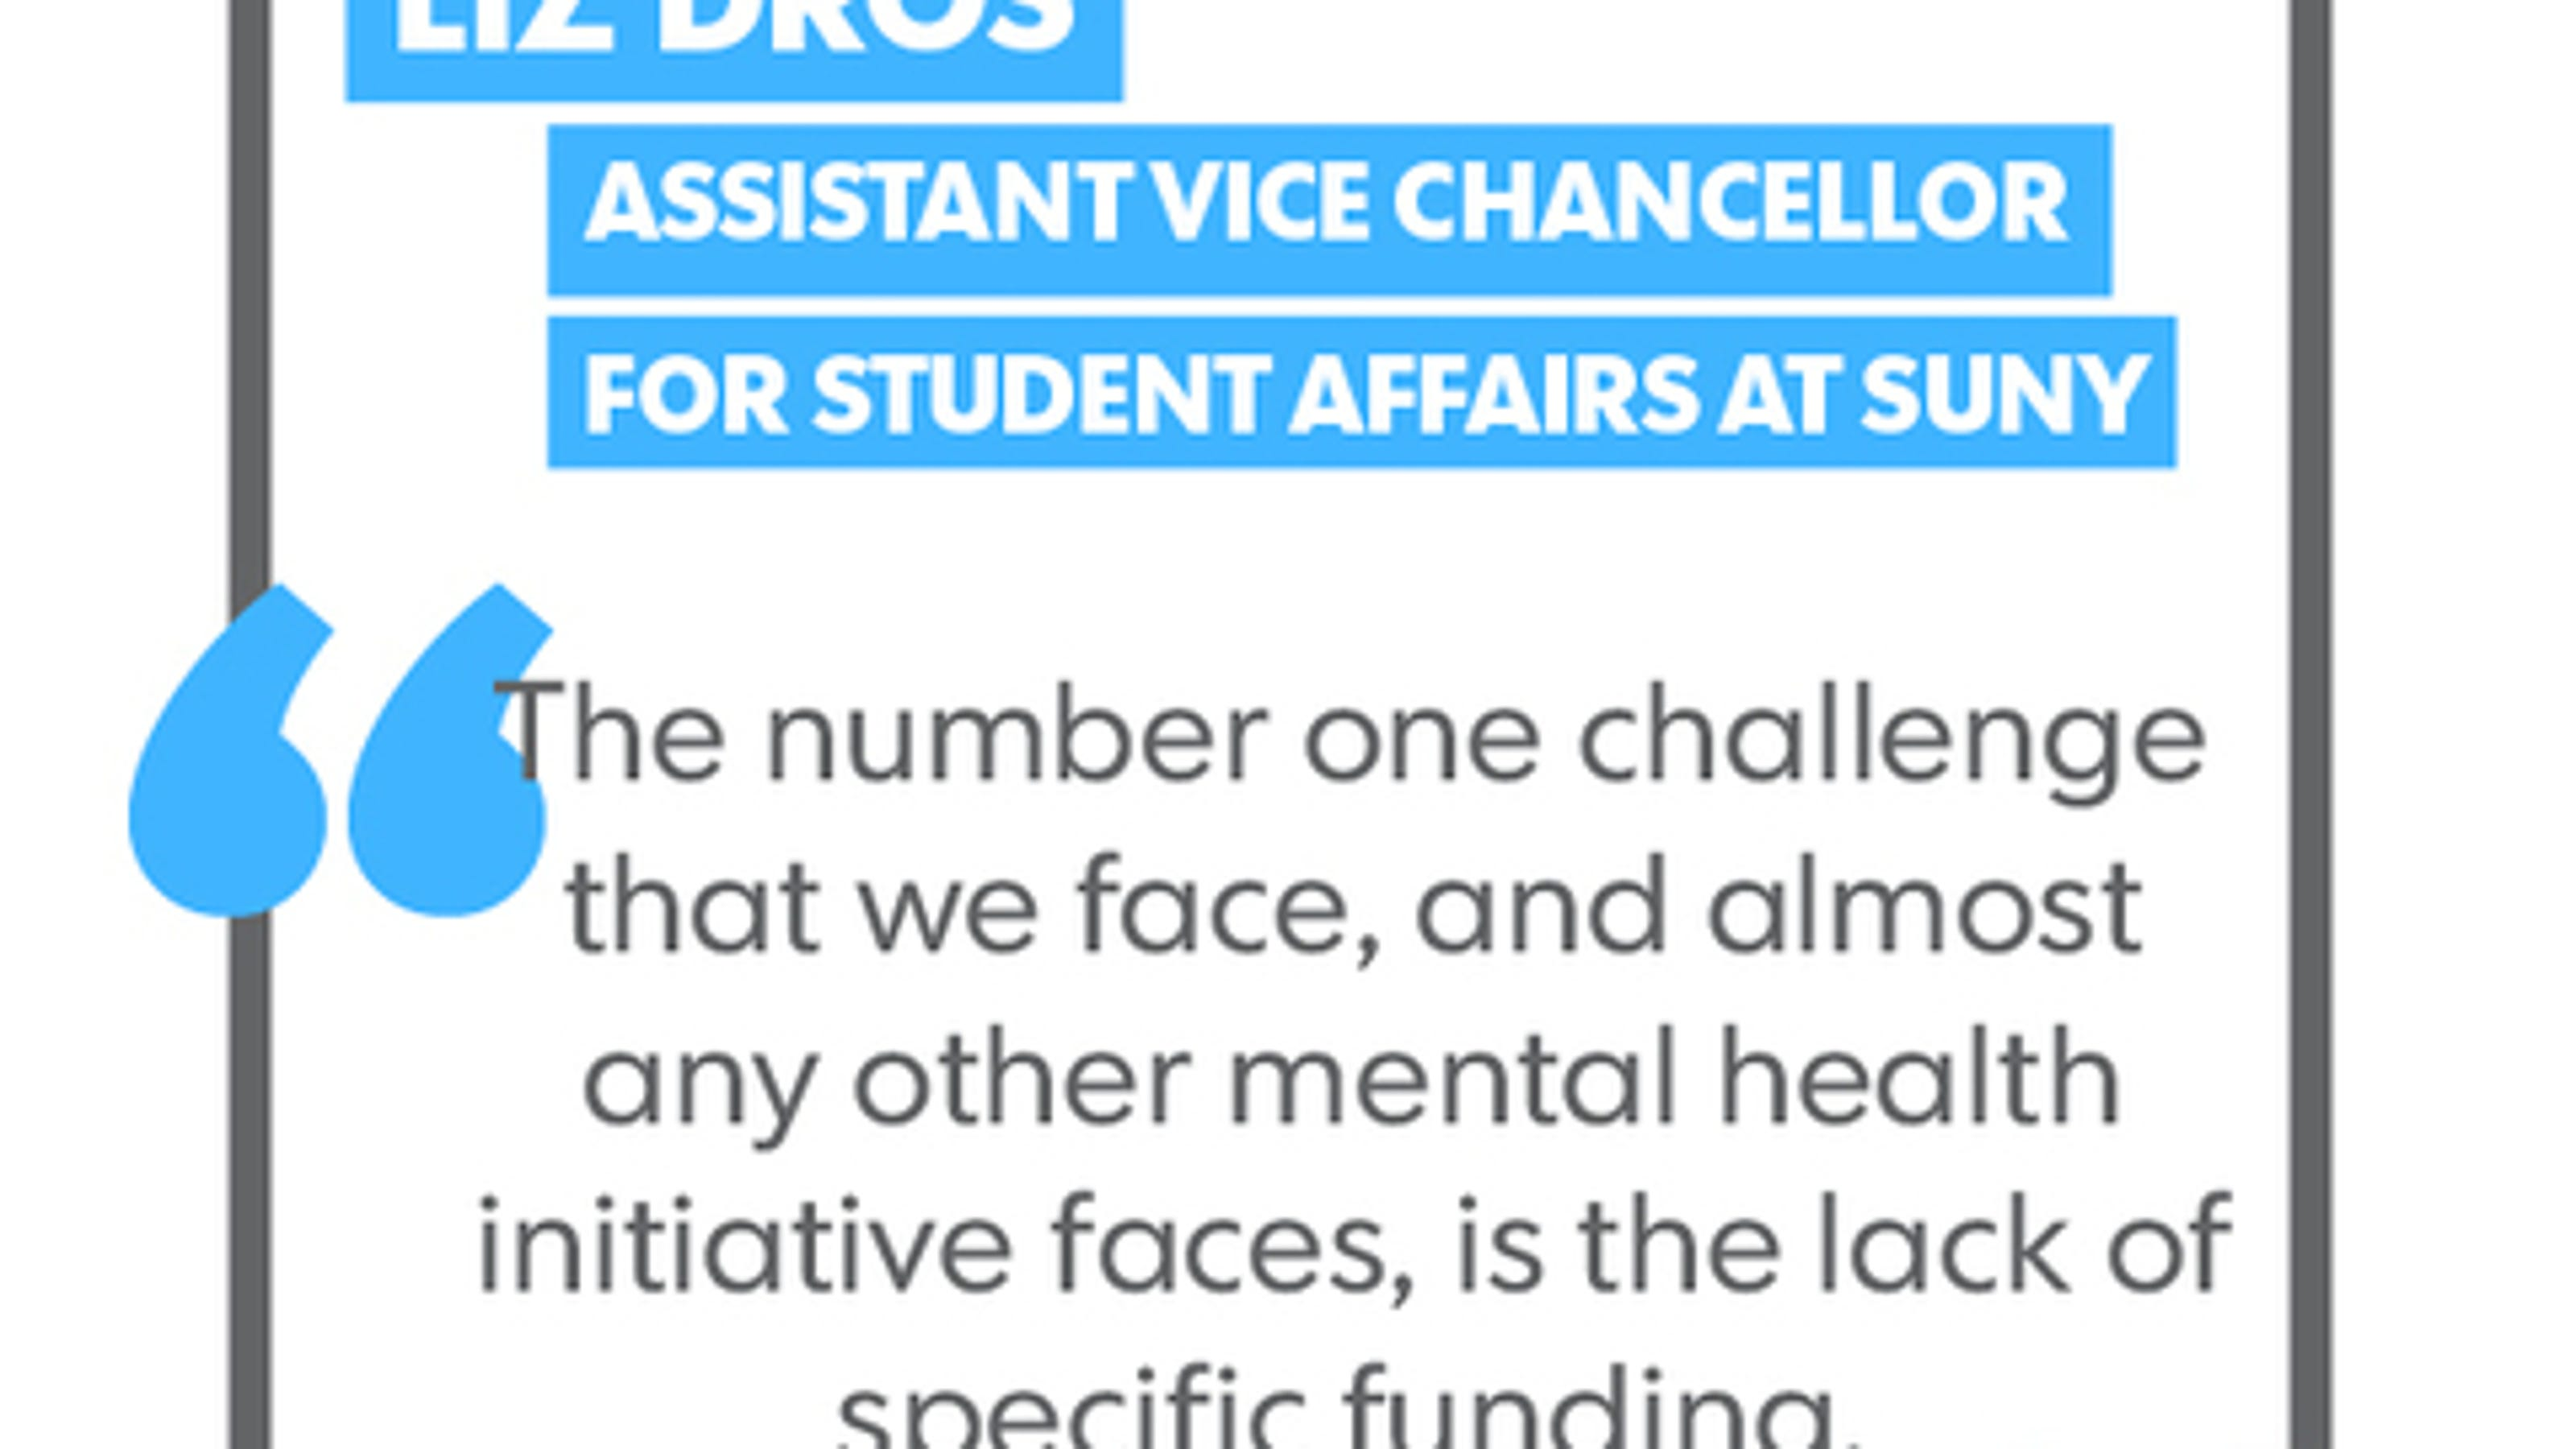 More And More Students Need Mental Health Services But Colleges